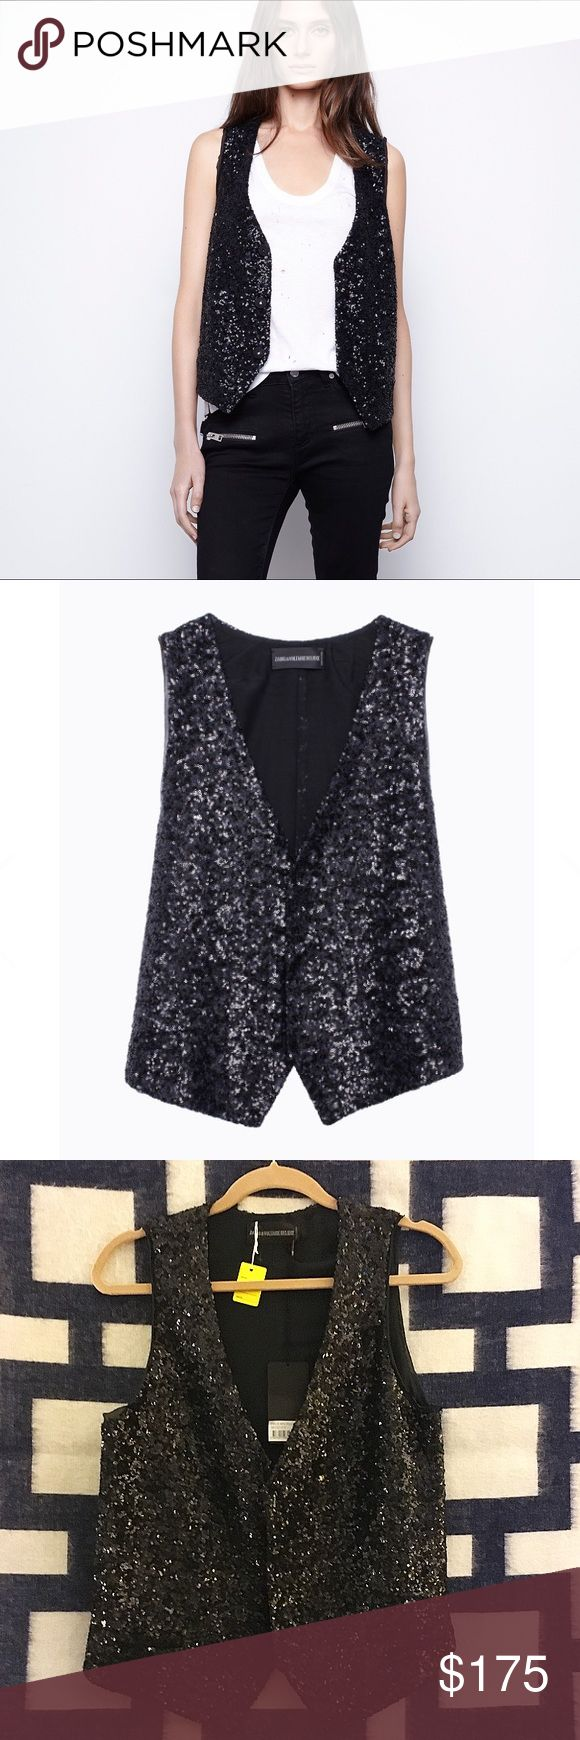 Zadig & Voltaire Deluxe Vest Gorgeous black sequin vest by Zadig et Voltaire. Vest has pockets and covered snaps. Lining: 68% cotton, 32% silk. Vest: 92% polyester, 8% Elastane. The perfect addition to any ensemble to add an edge or dress up jeans and a tee. NWT. Zadig & Voltaire Jackets & Coats Vests